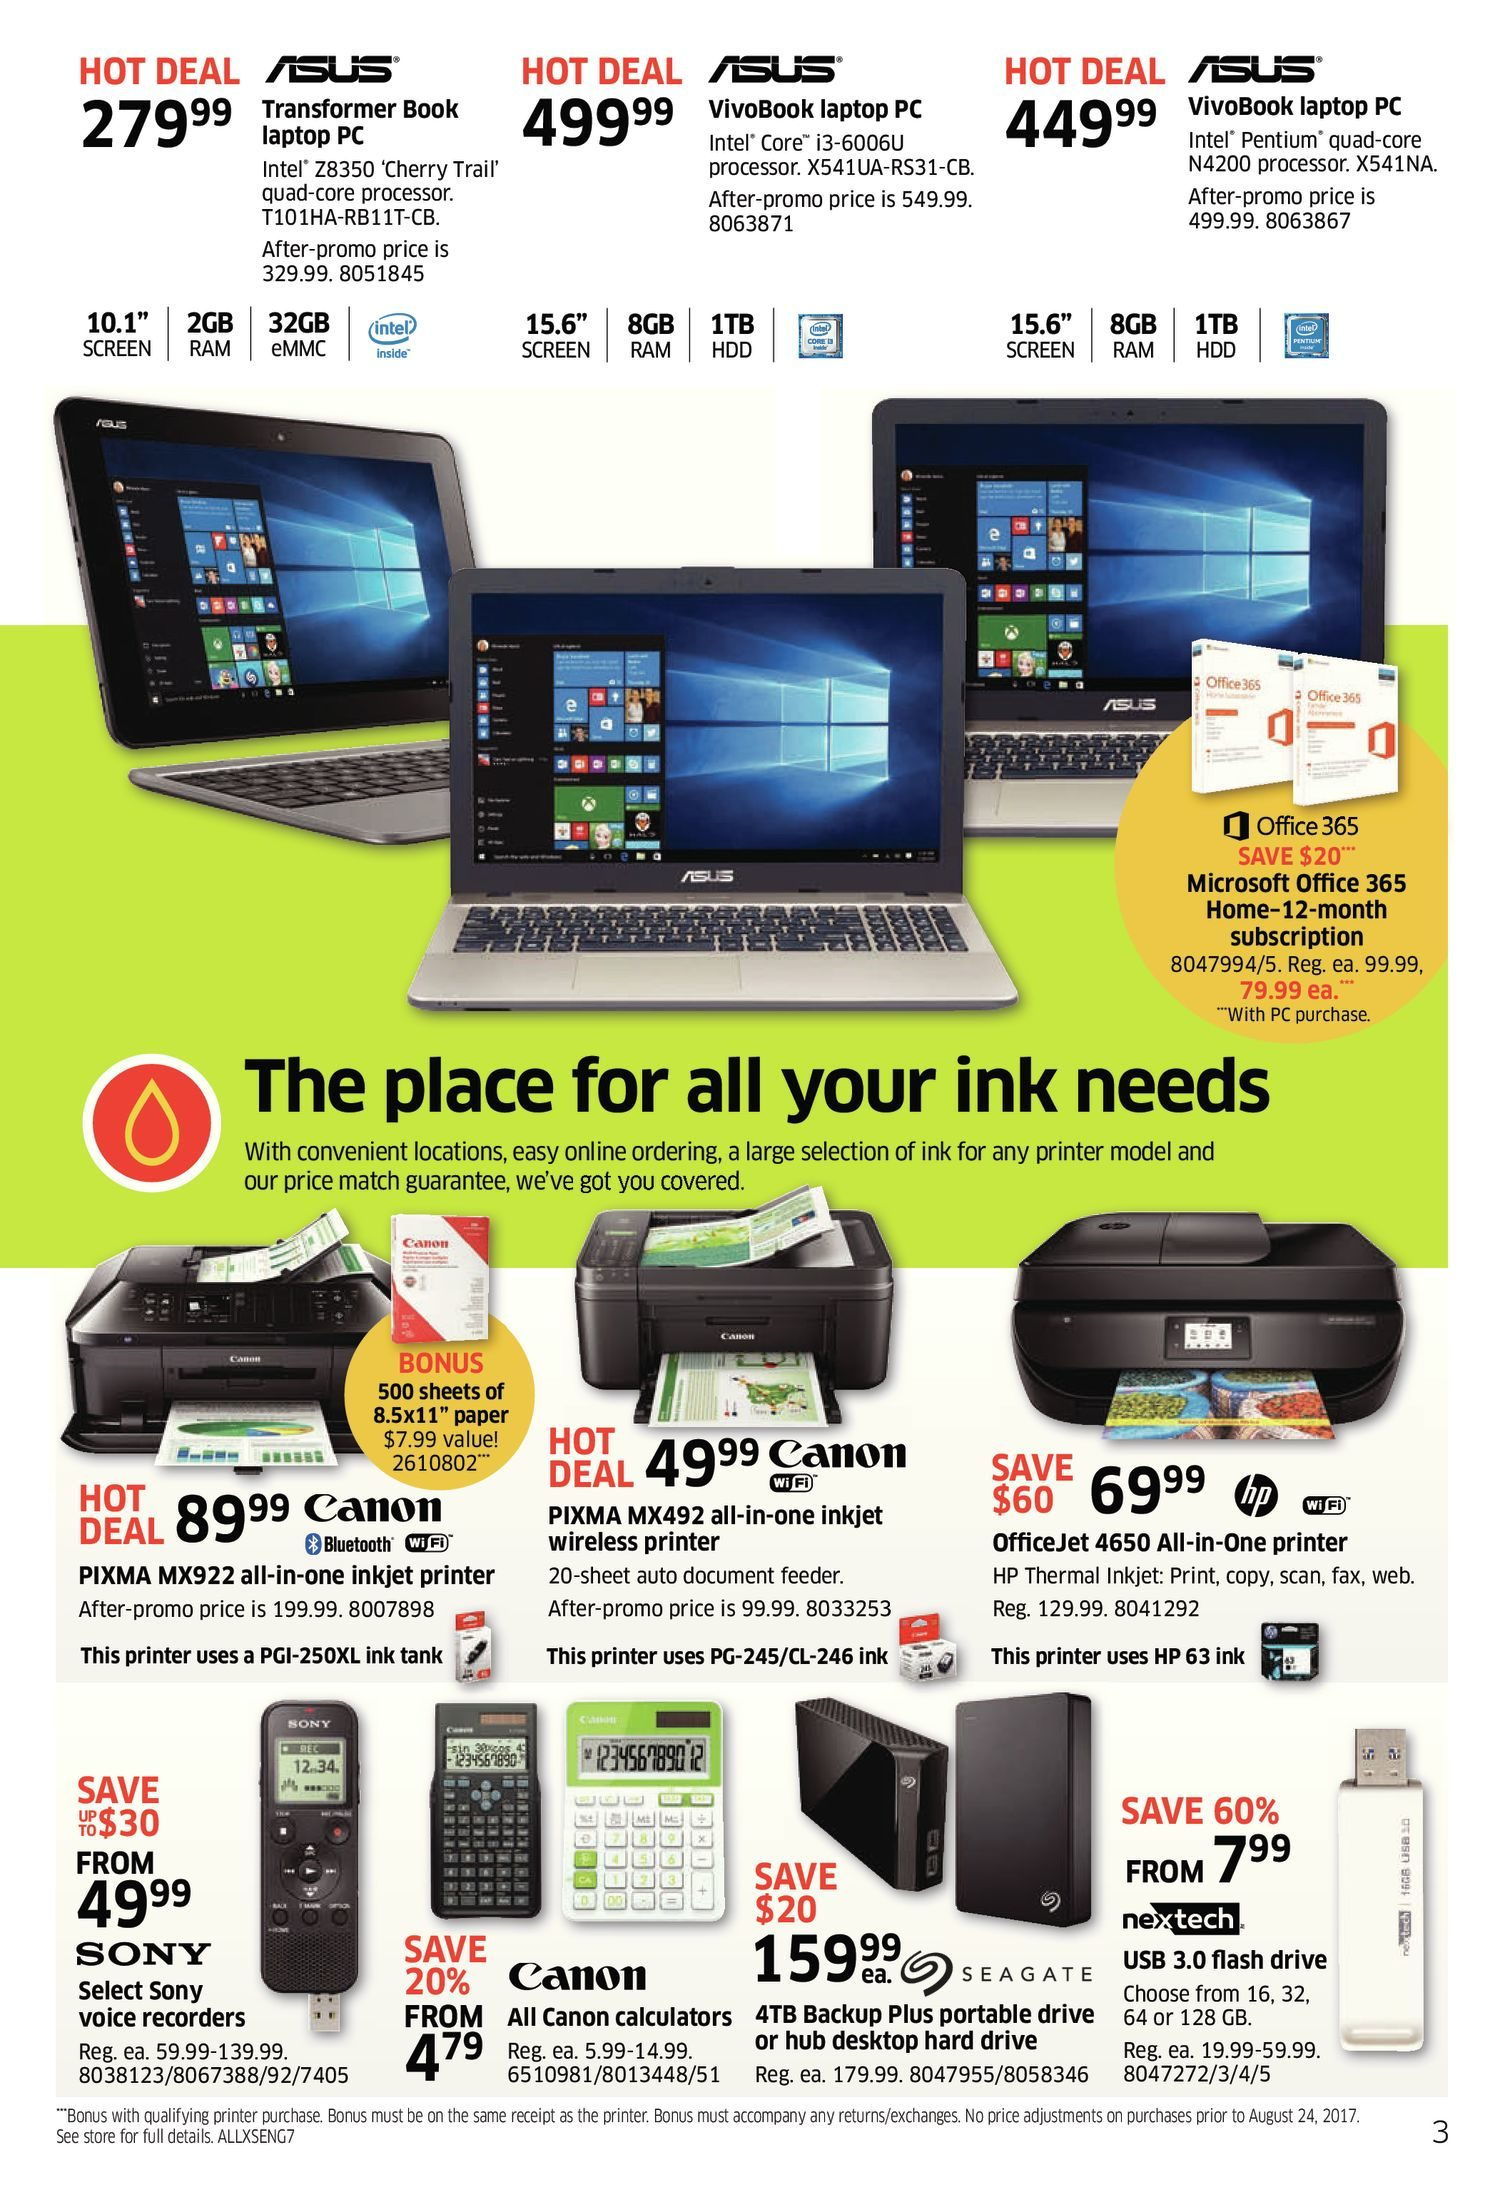 The Source Weekly Flyer - Back to School Tech Event - Aug 24